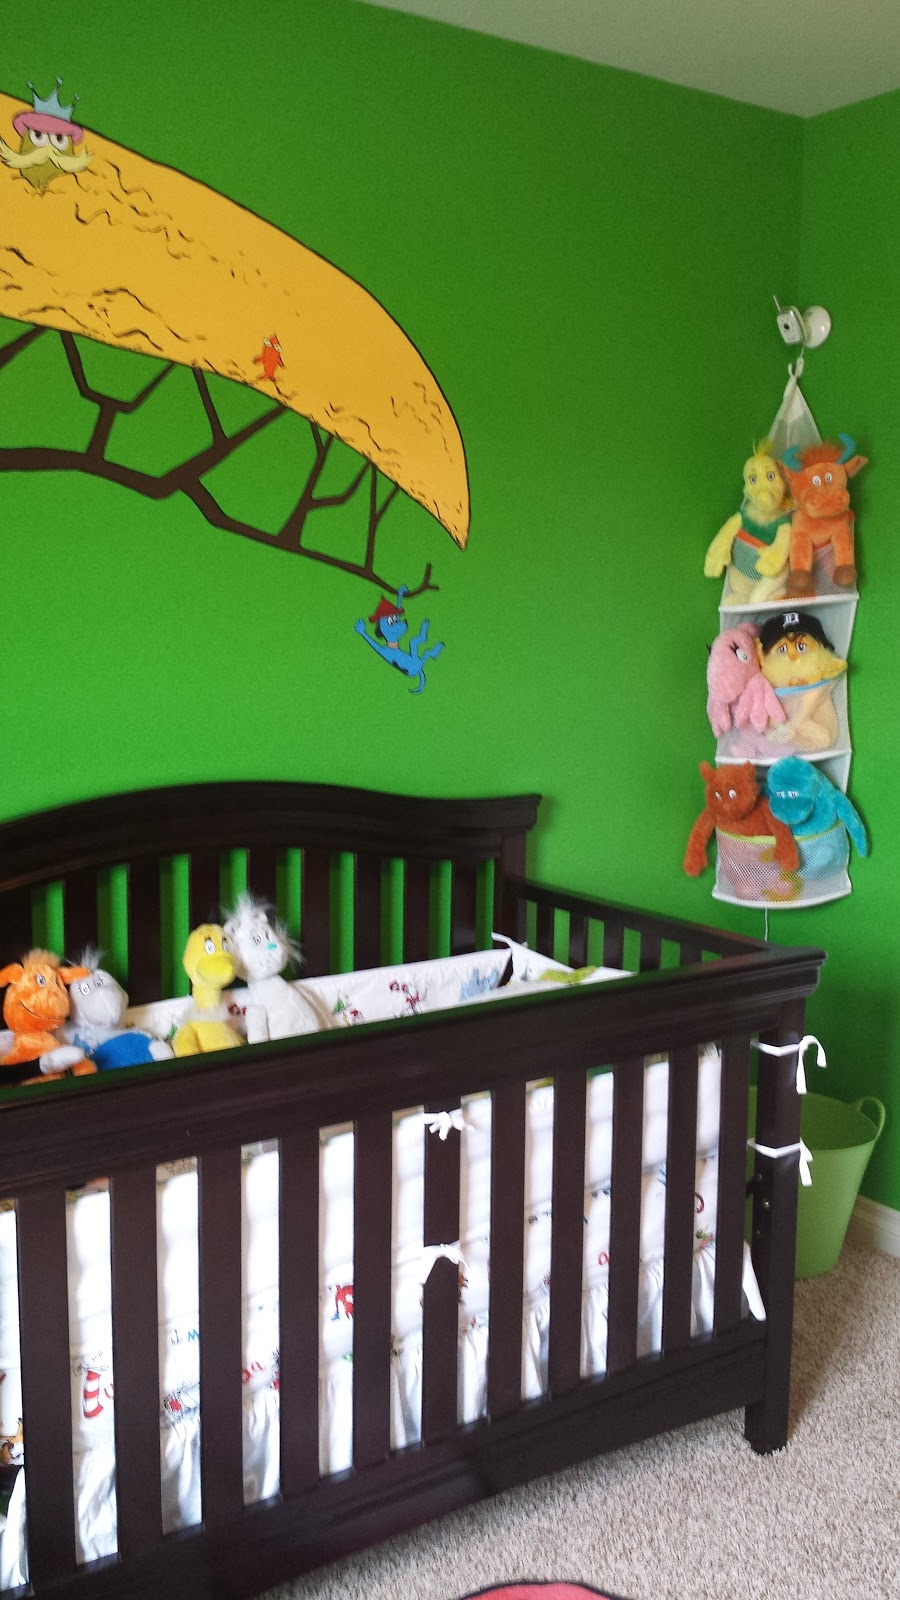 The skillful bee dr seuss nursery mural for Dr seuss nursery mural